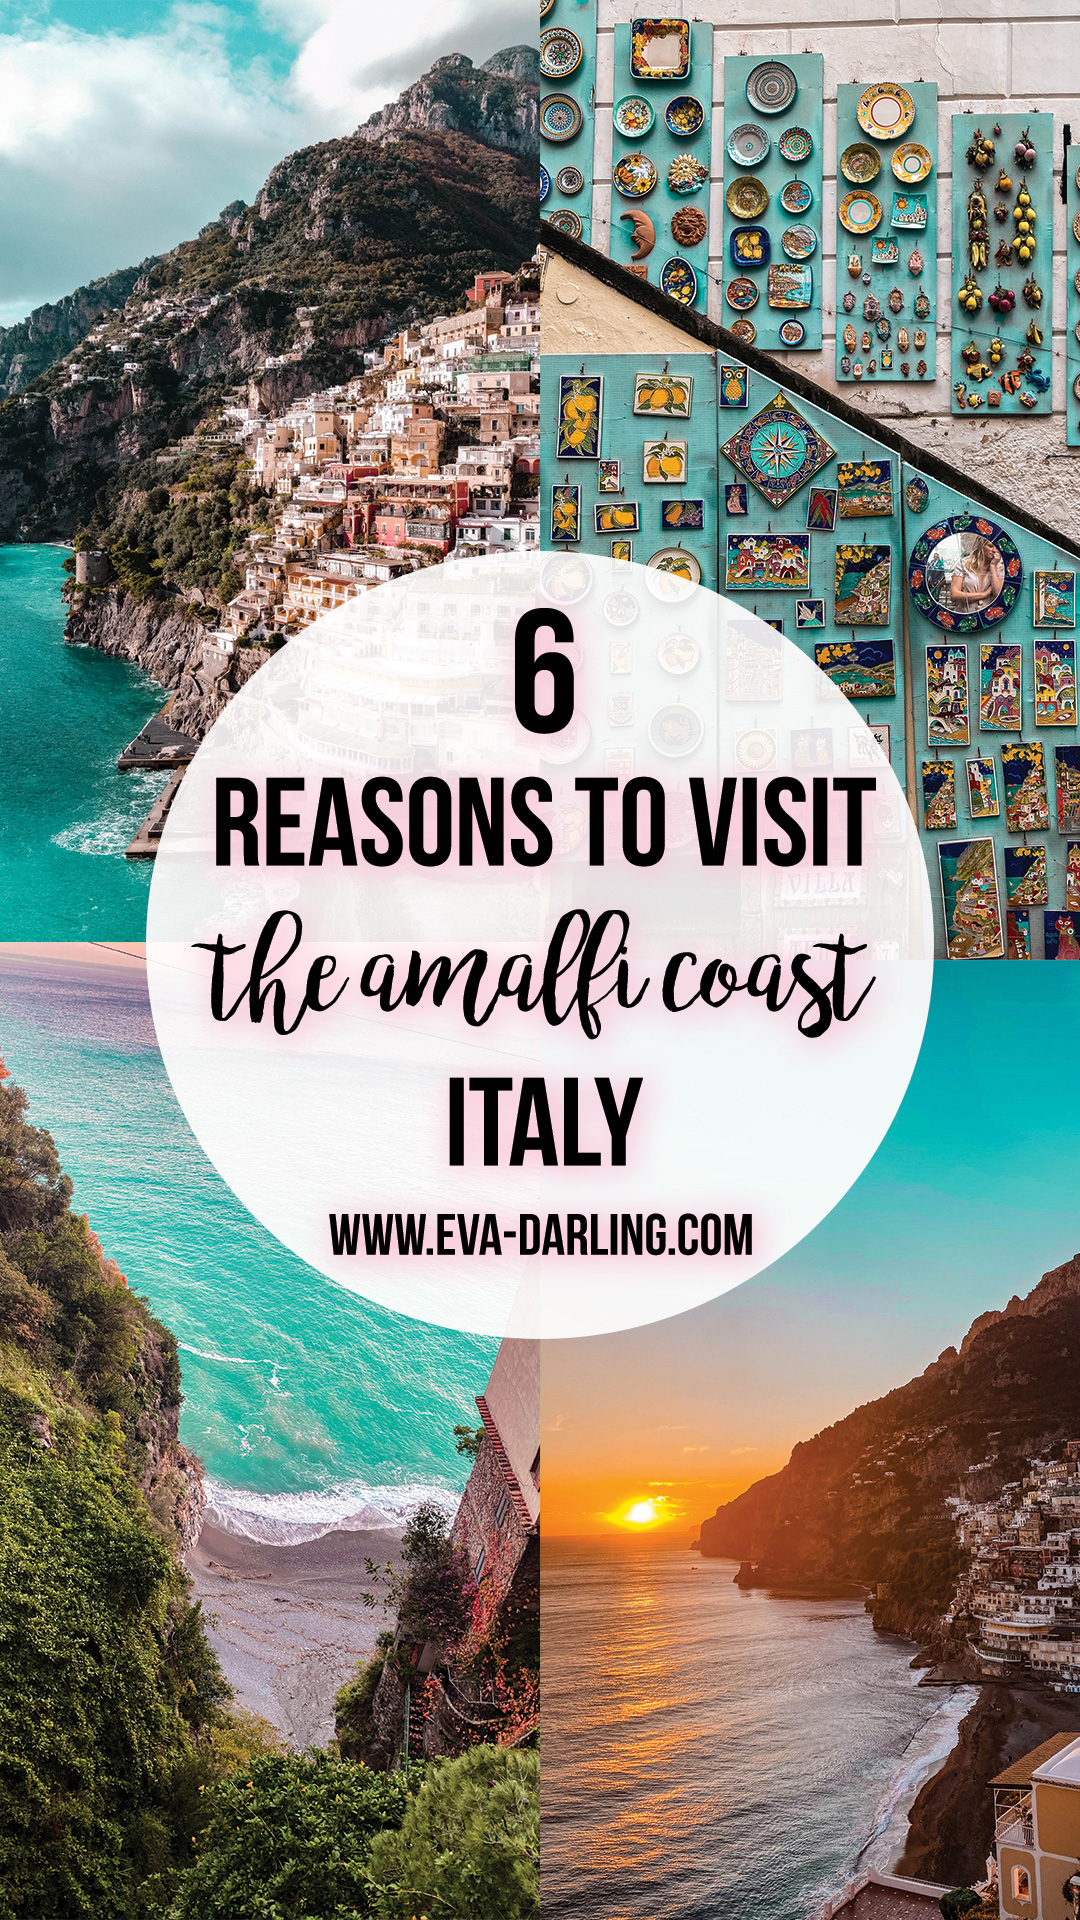 best things to do on the amalfi coast where to go in italy road trip destination europe things to do in positano amalfi coast winter off season travel blogger eva darling eva phan plate wall beach travel tips southern italy province of salerno solo female travel traveler sunset amalfi